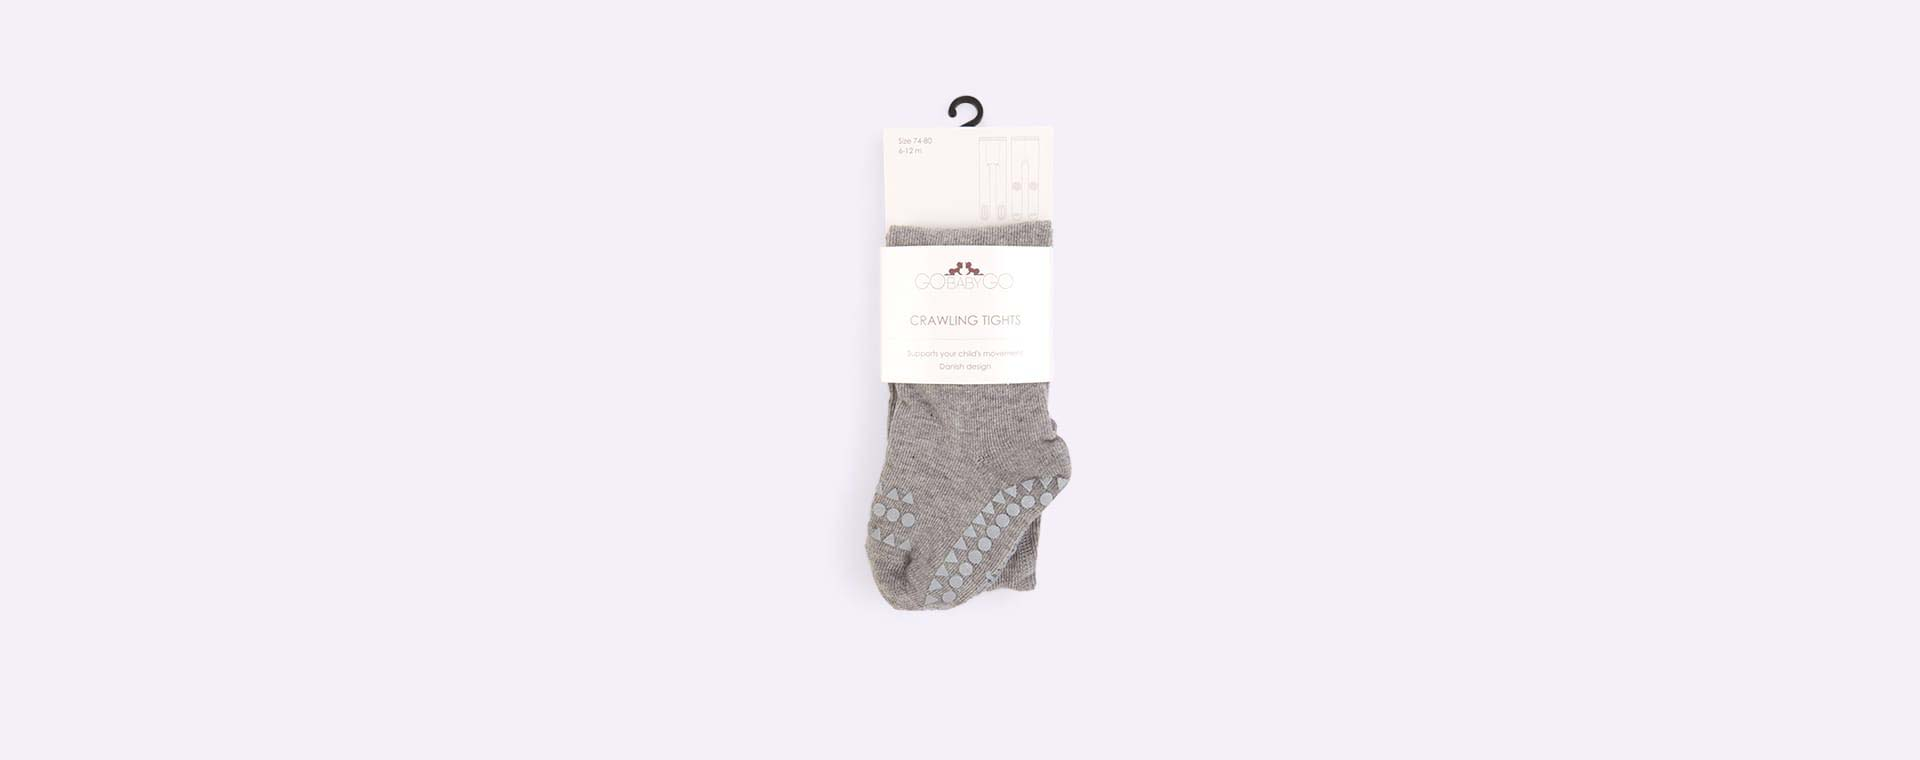 Grey Go Baby Go Crawling Tights